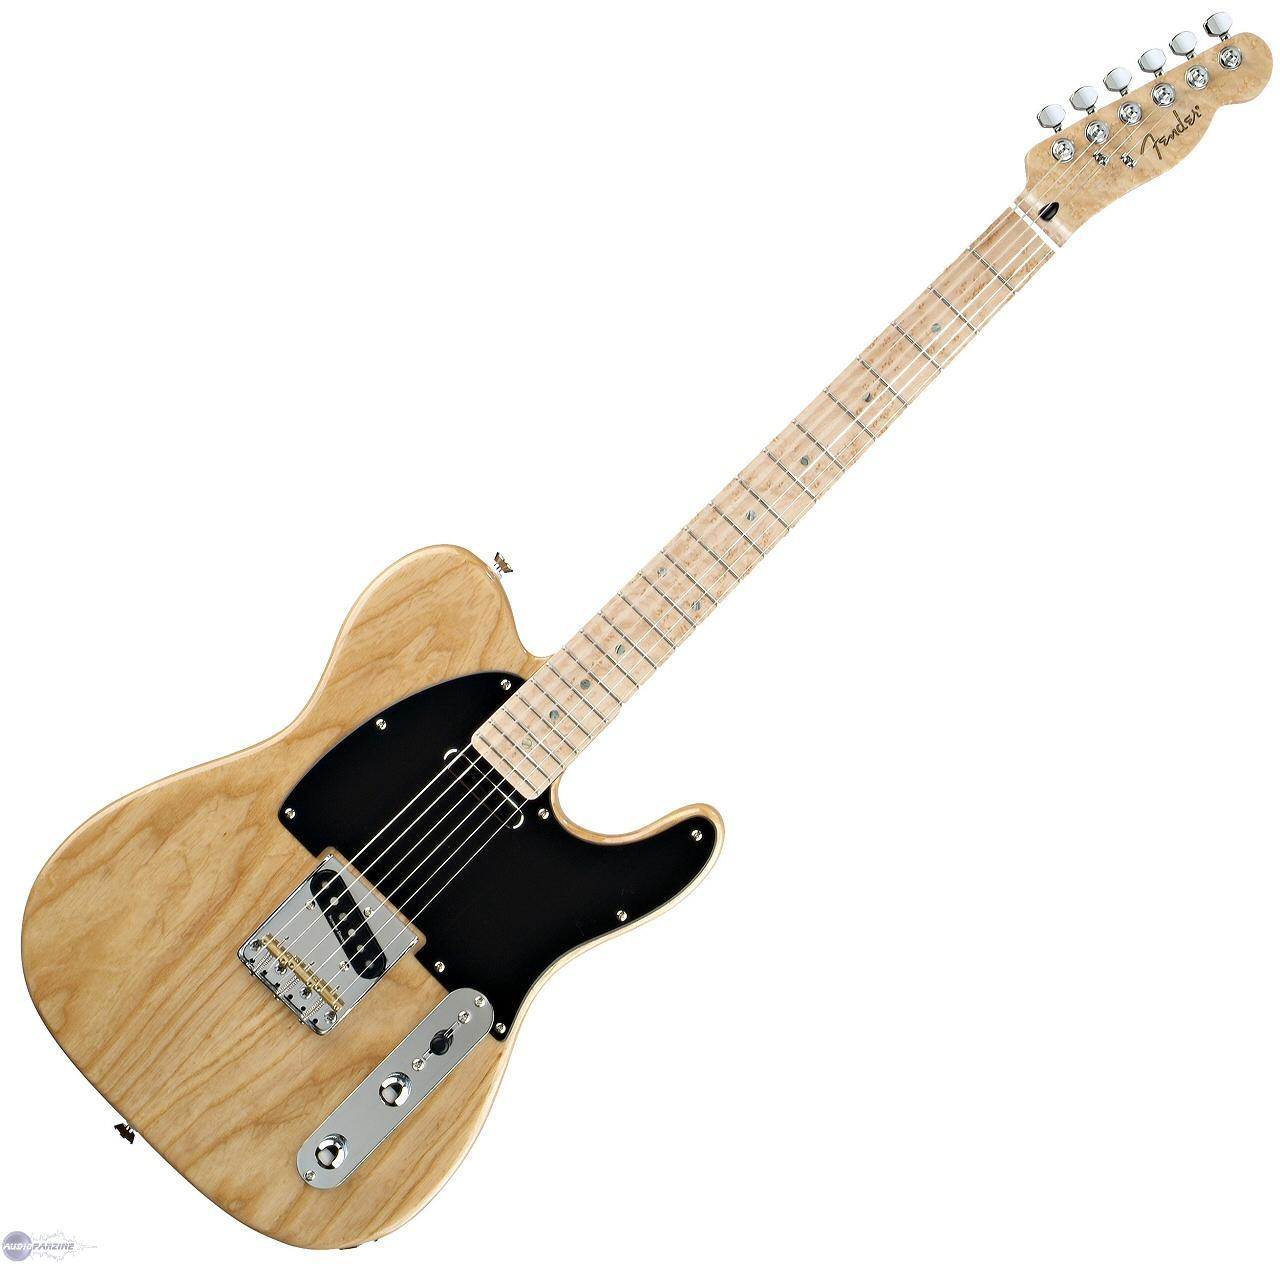 Modern Vs 50s Les Paul Wiring furthermore Index moreover Fender Stratocaster Hss Wiring Diagram together with How to Balance Pickups on Strats and Teles additionally NEW   Custom Telecaster Chrome Control Plate 52 Telecaster Wiring Diagram On Back. on telecaster guitar wiring diagram